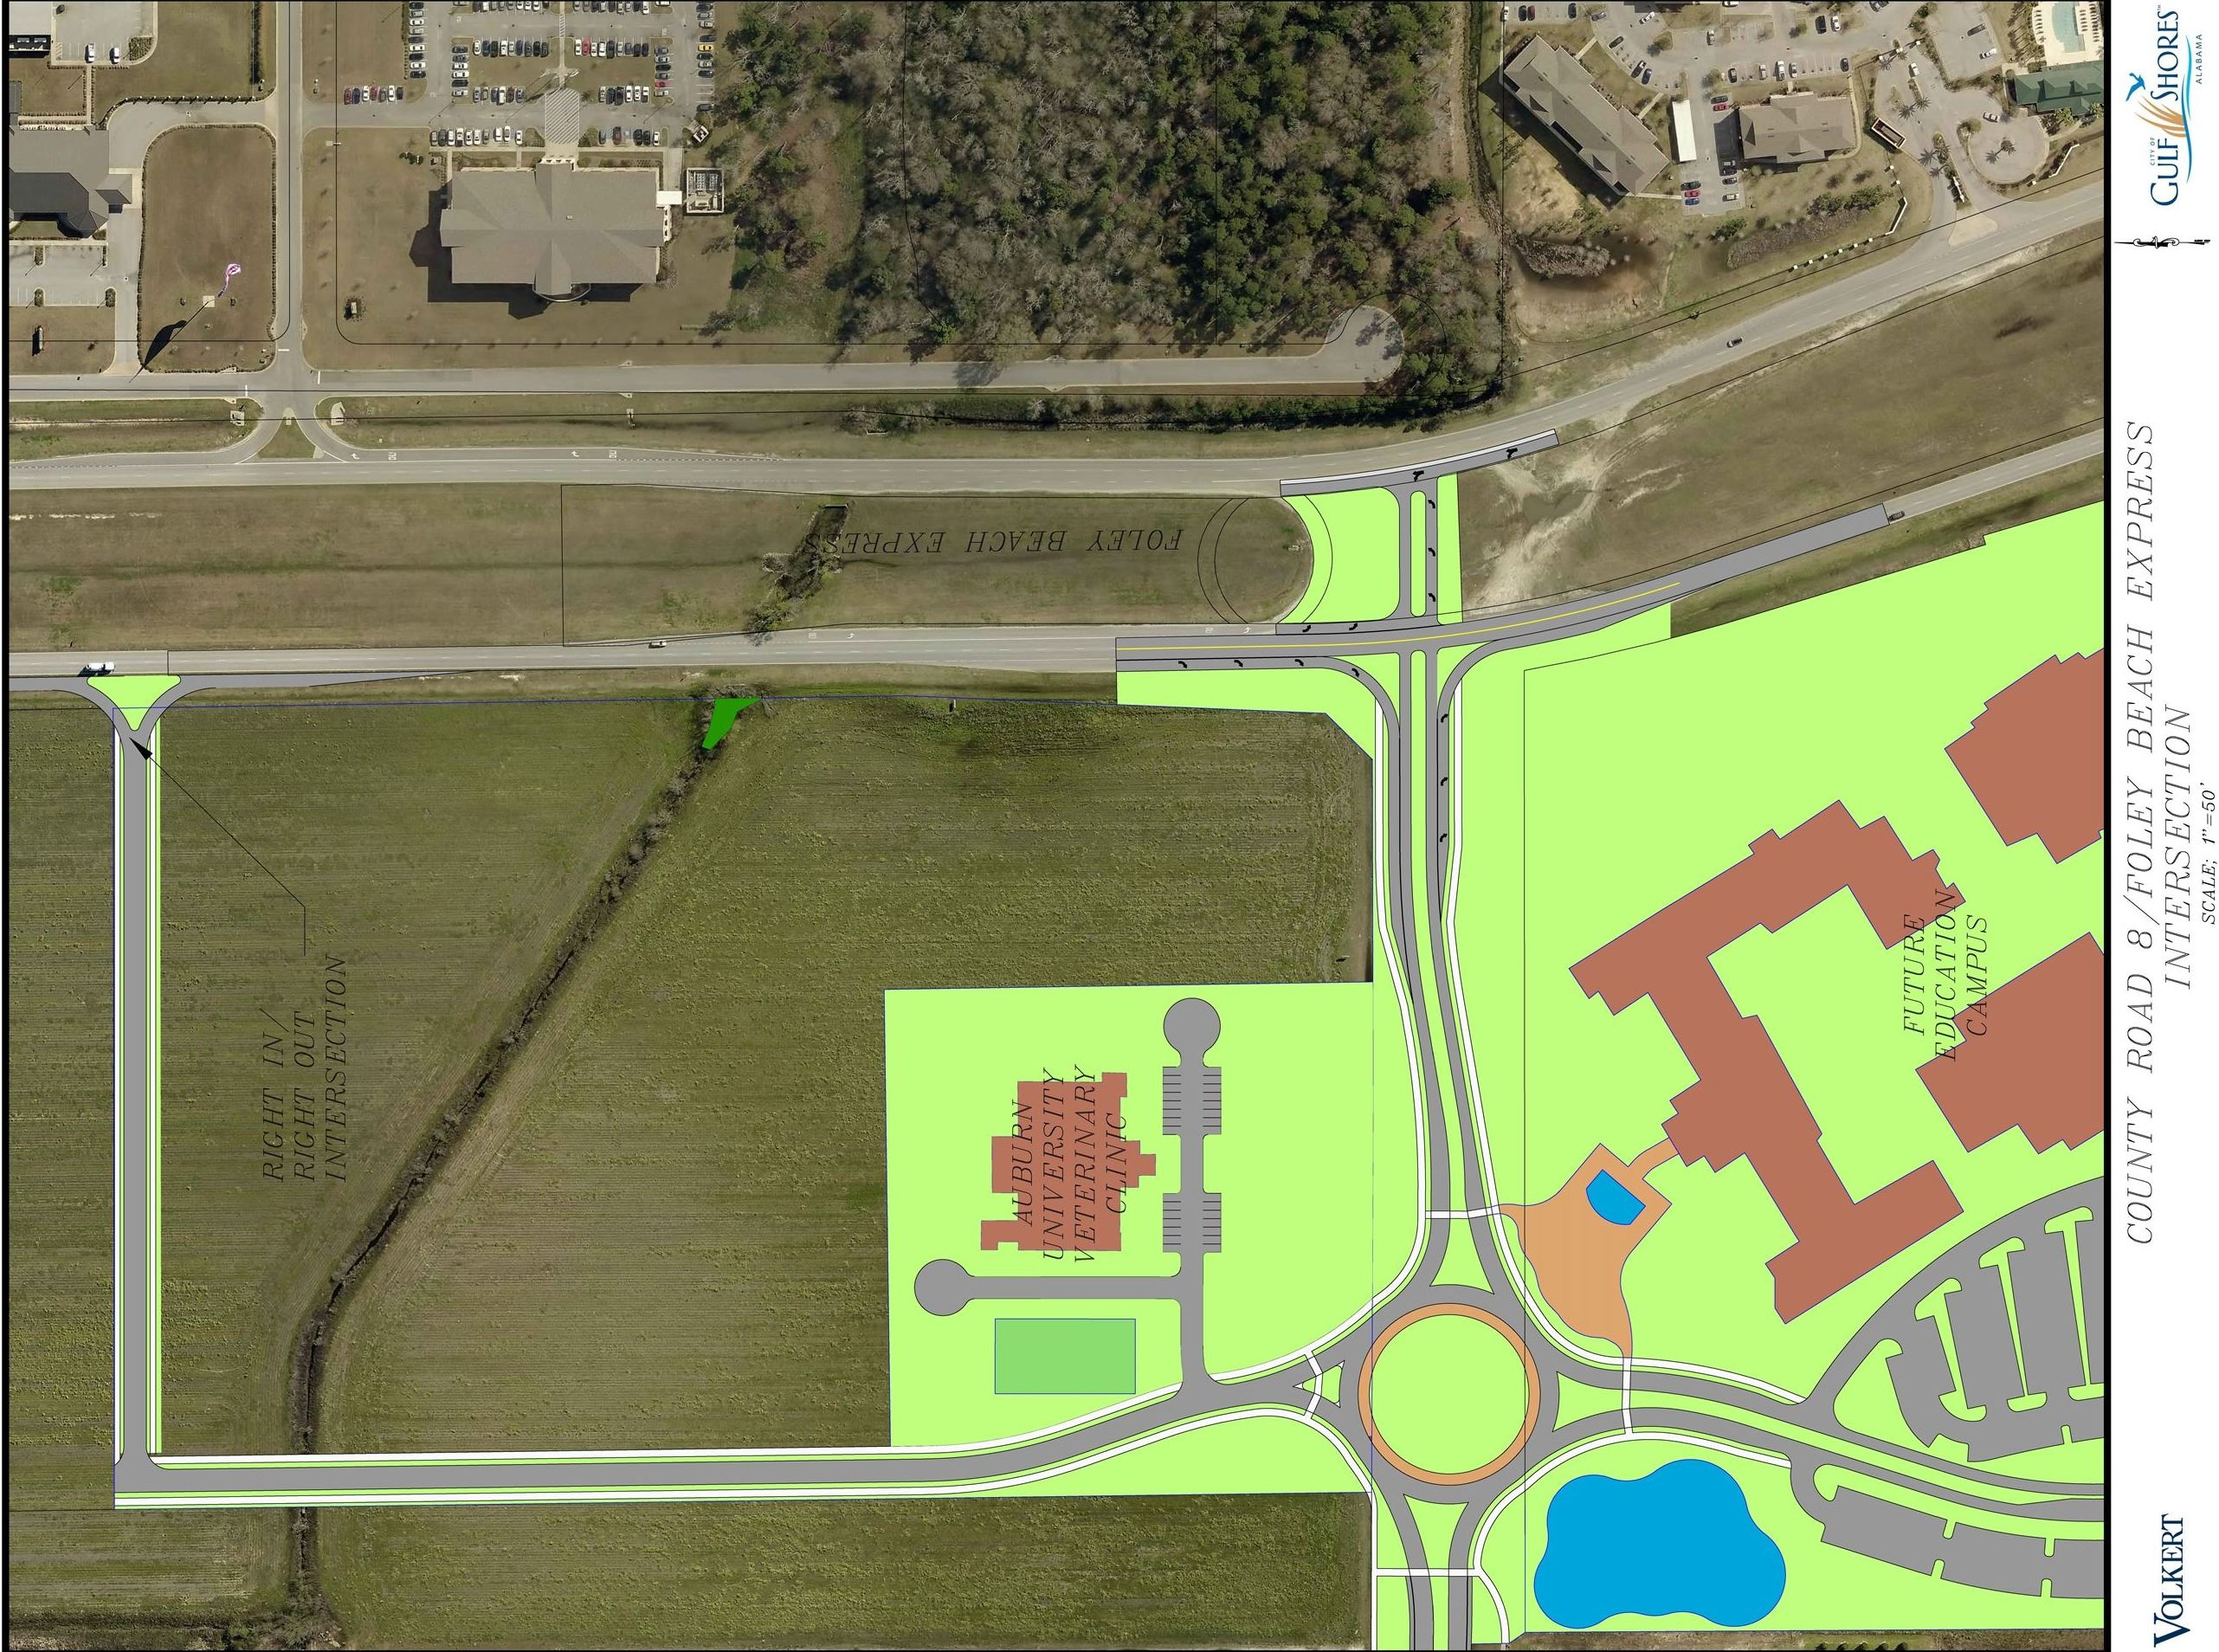 county road 8 fbe intersection enlargement